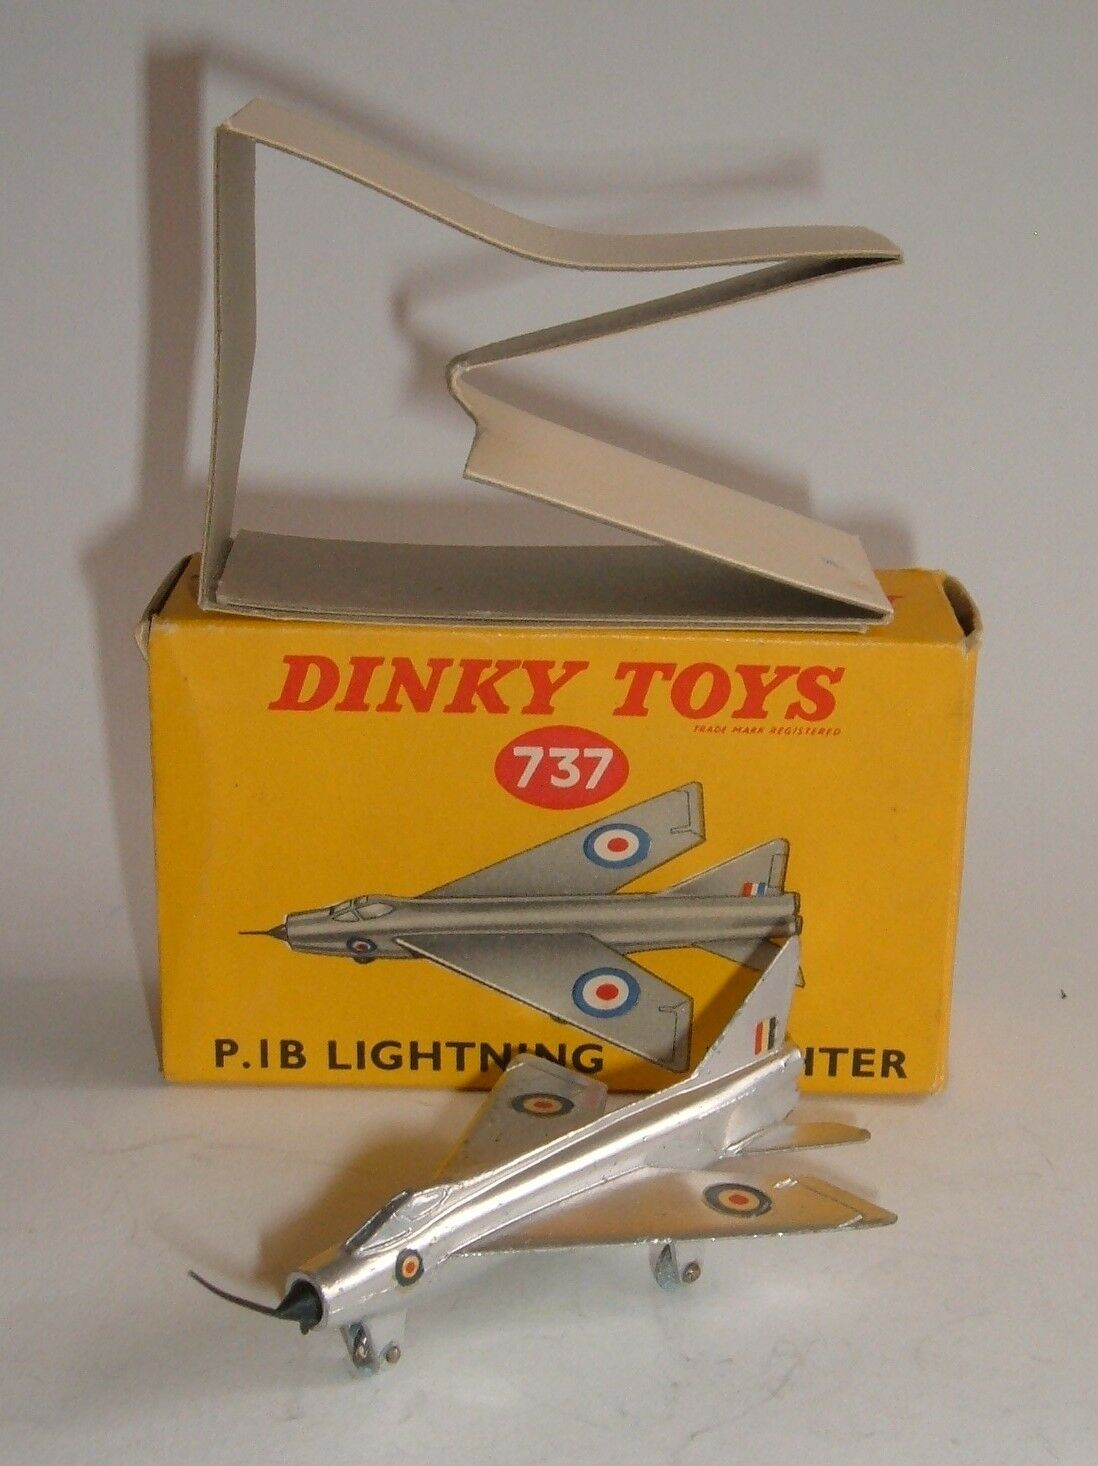 Dinky Toys No. 737, P.IB Lighting Fighter - Superb Mint